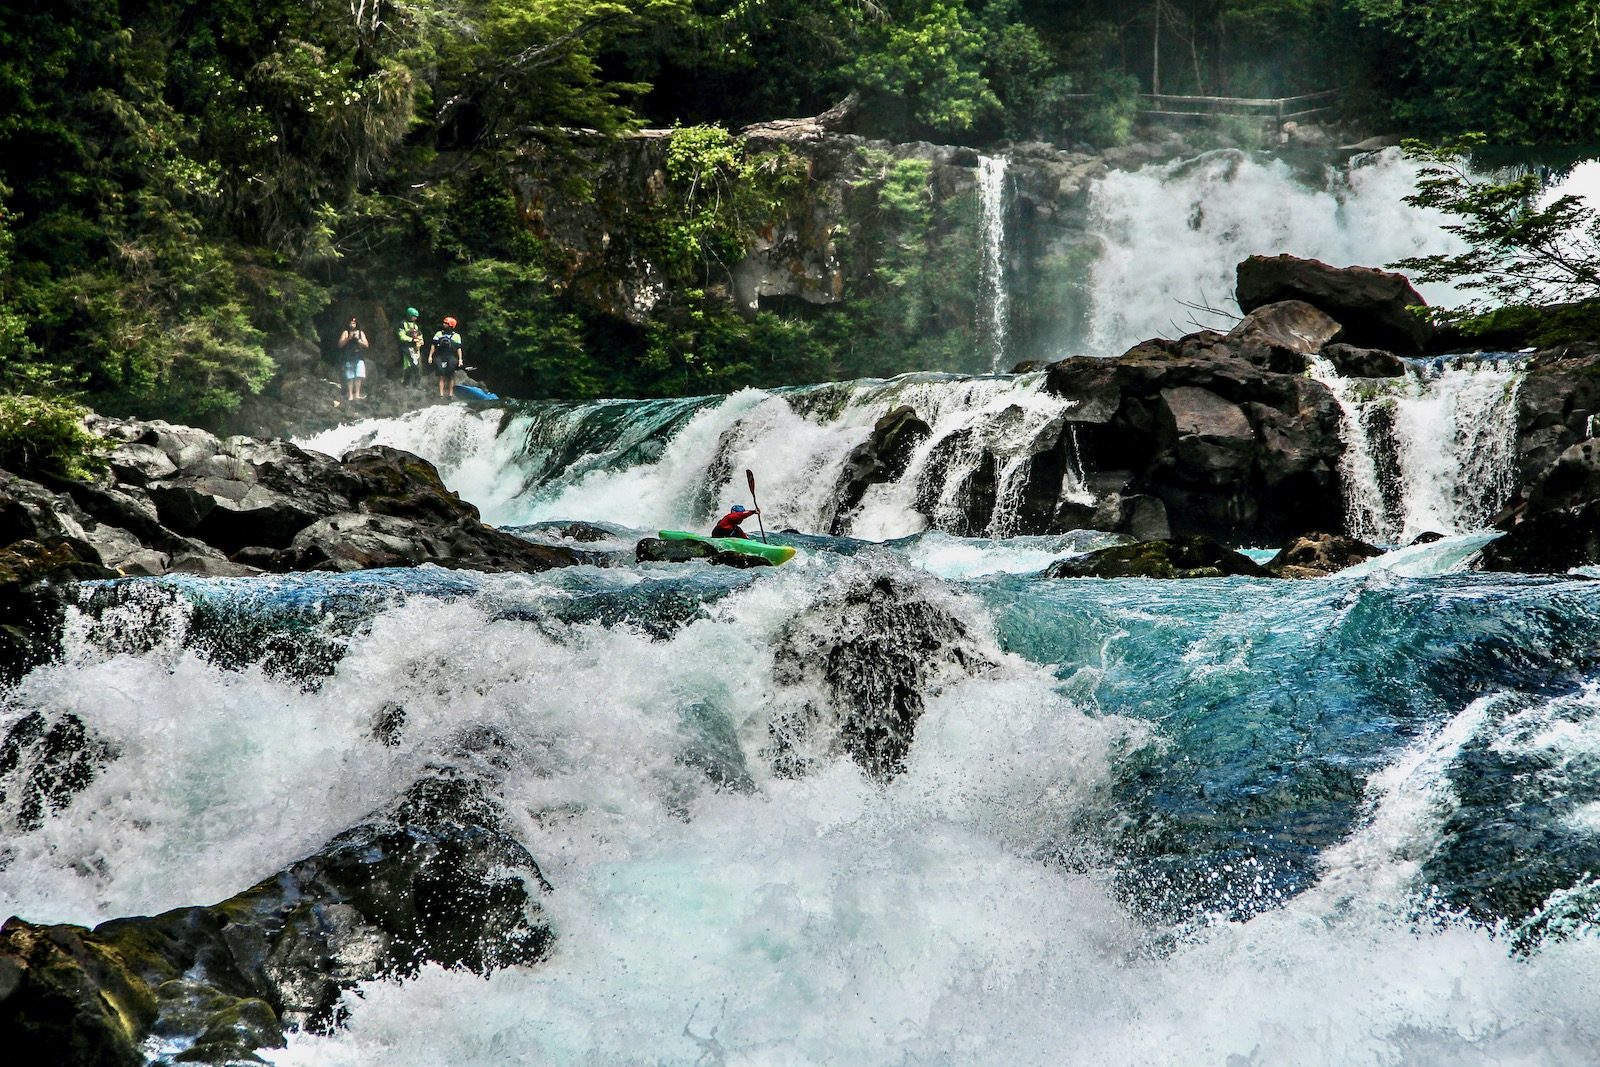 Kayakers at Salto La Leona, Fuy River. Photo: Salomé Candela